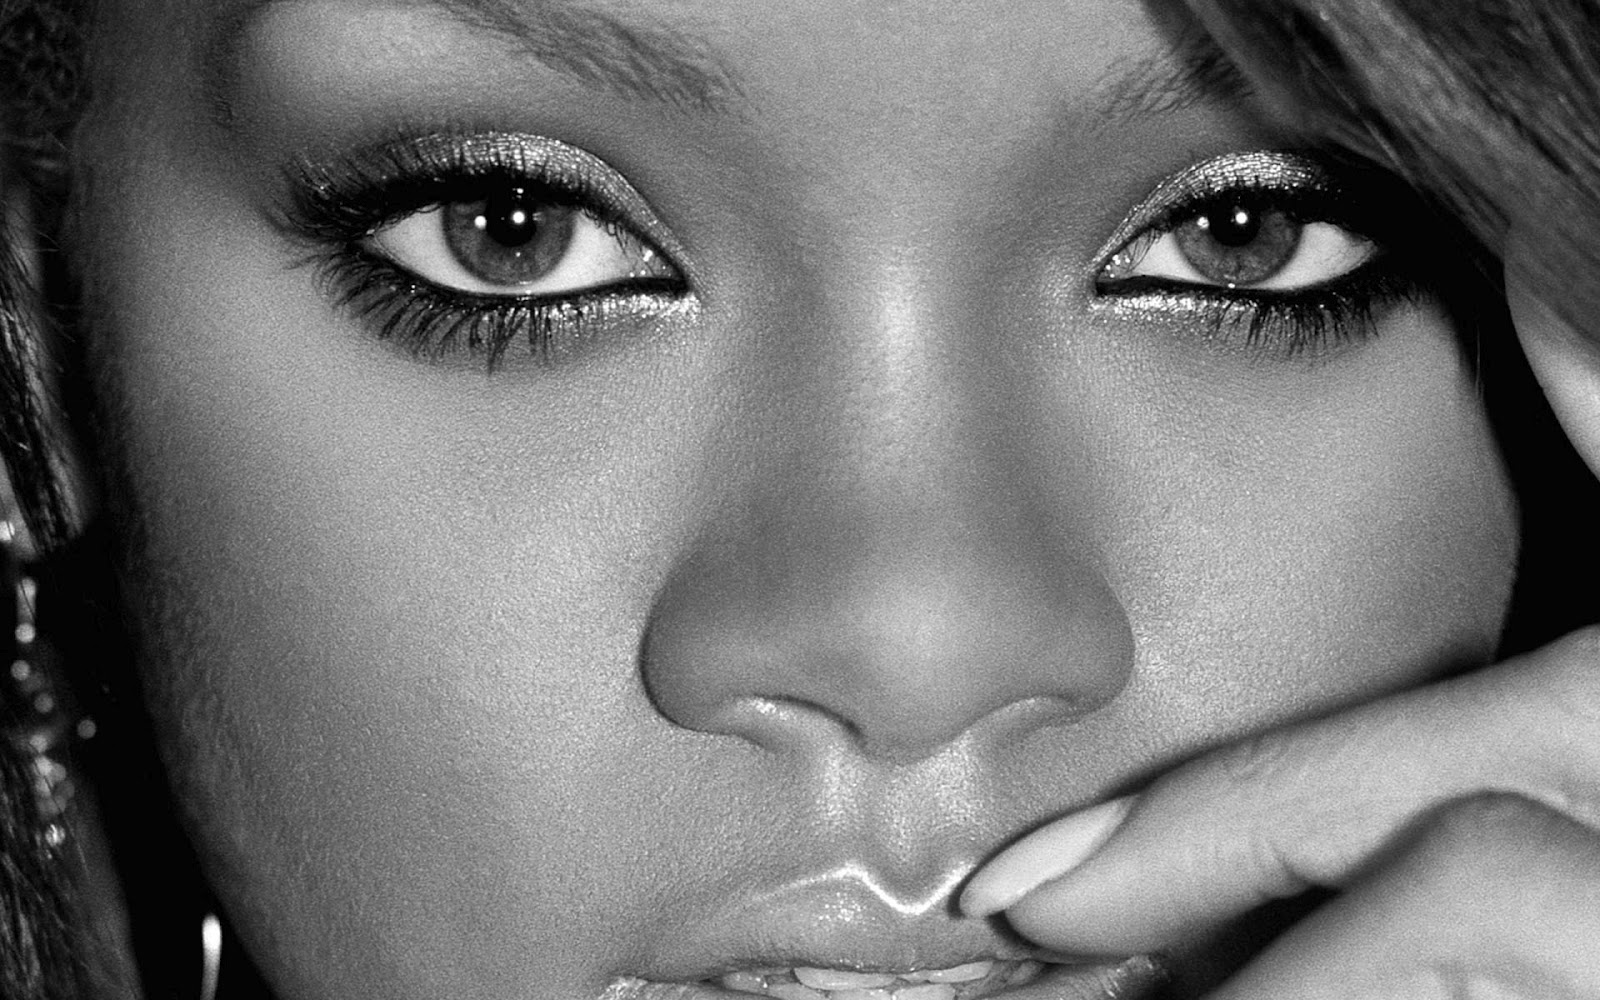 http://2.bp.blogspot.com/-Re5kXrFAg_I/UISSX1t-5CI/AAAAAAAABd0/XL79CQe-x-Y/s1600/The-best-top-desktop-rihanna-wallpapers-hd-rihanna-wallpaper-backgrounds-04.jpg